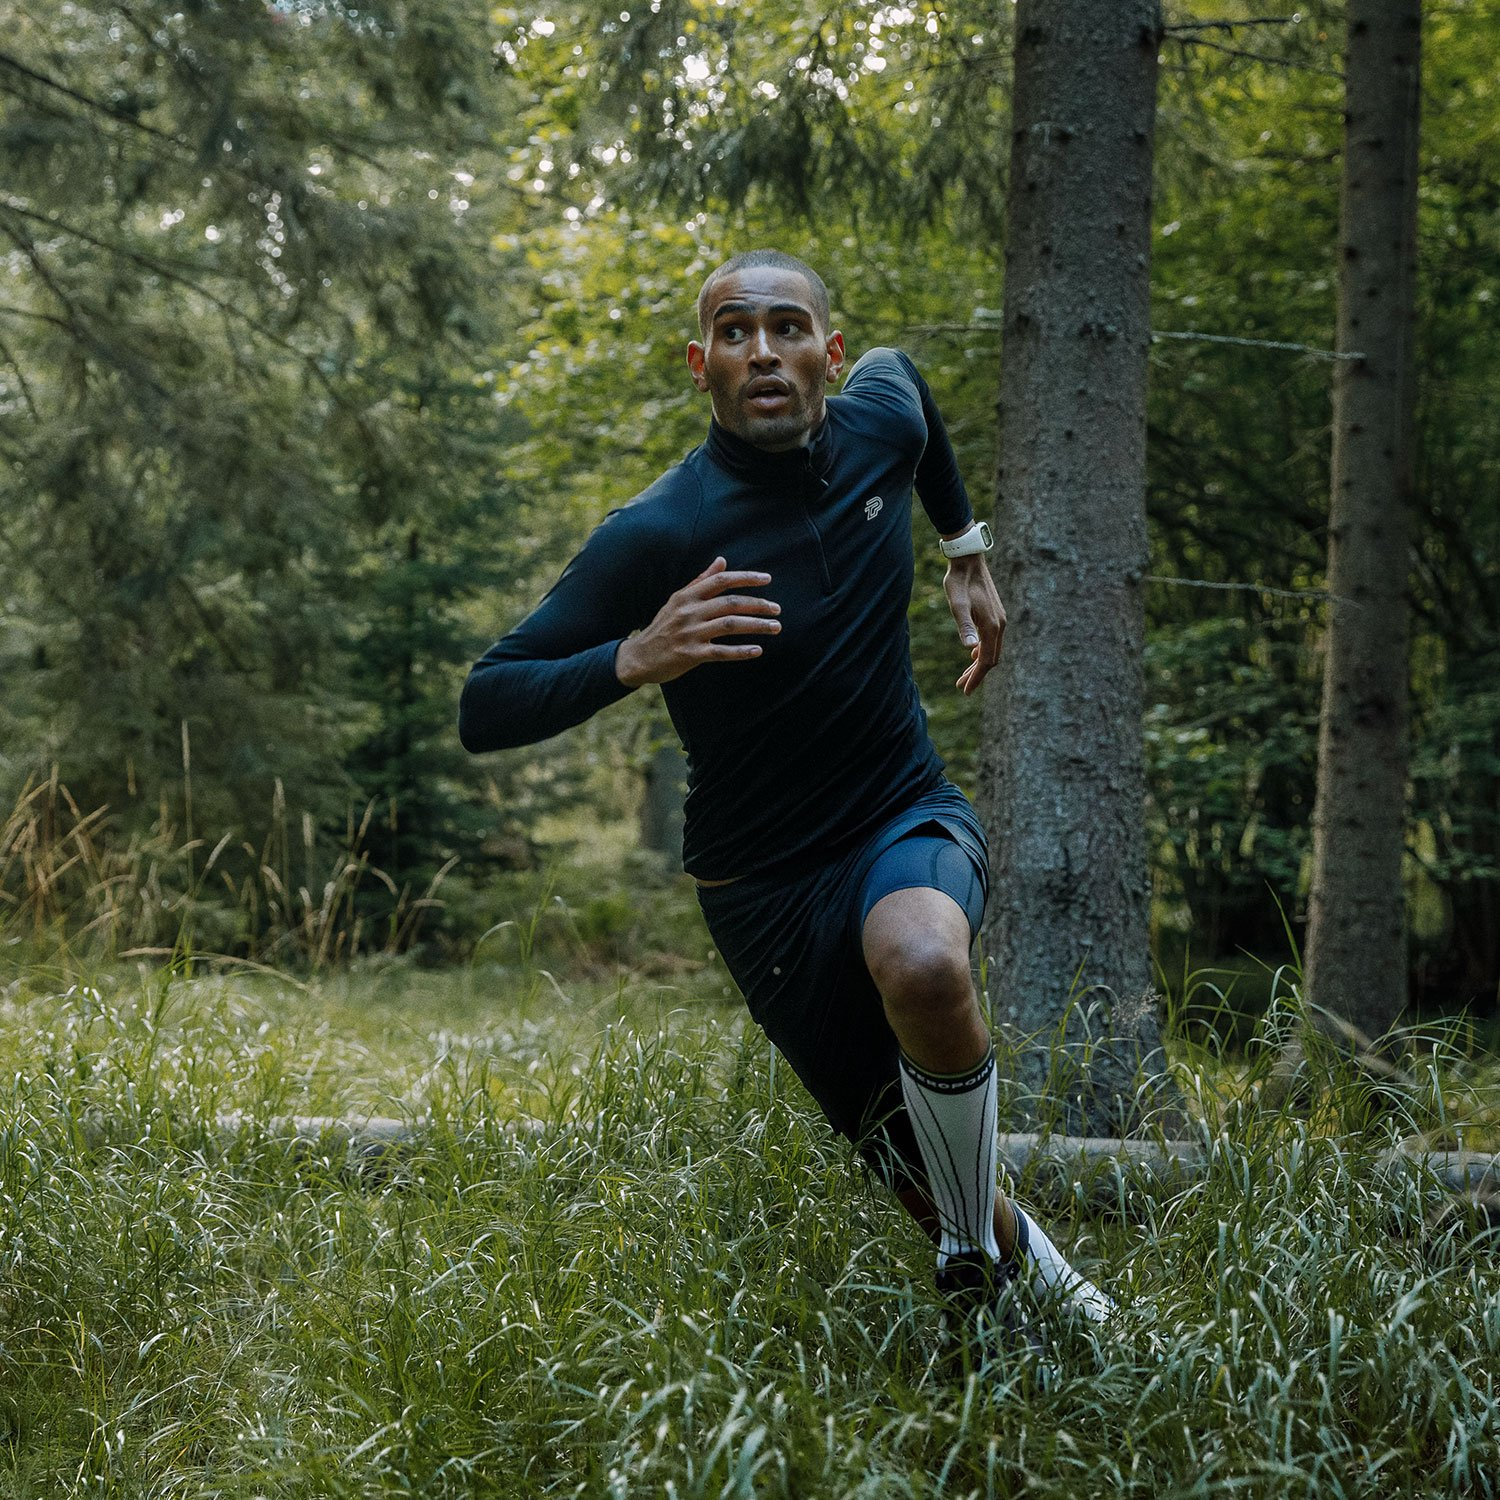 is the role of compression wear in preventing injury during training